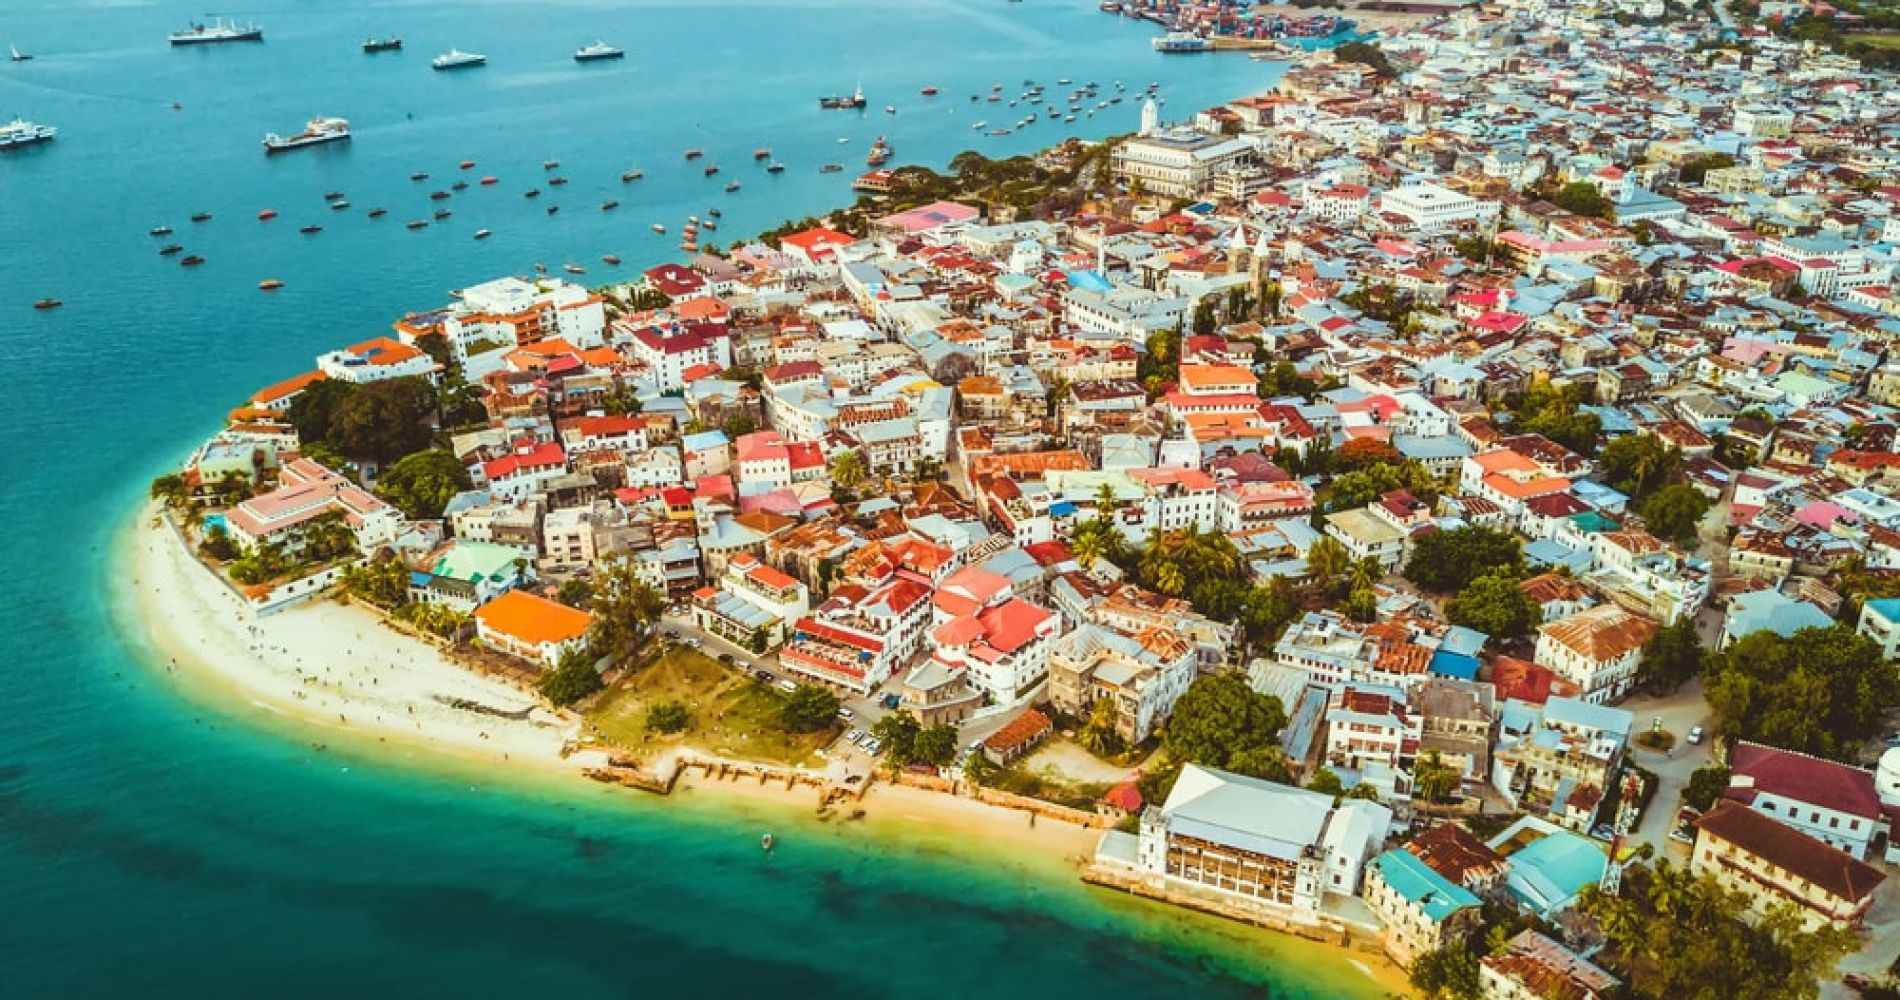 Wander through Zanzibar's Stone Town